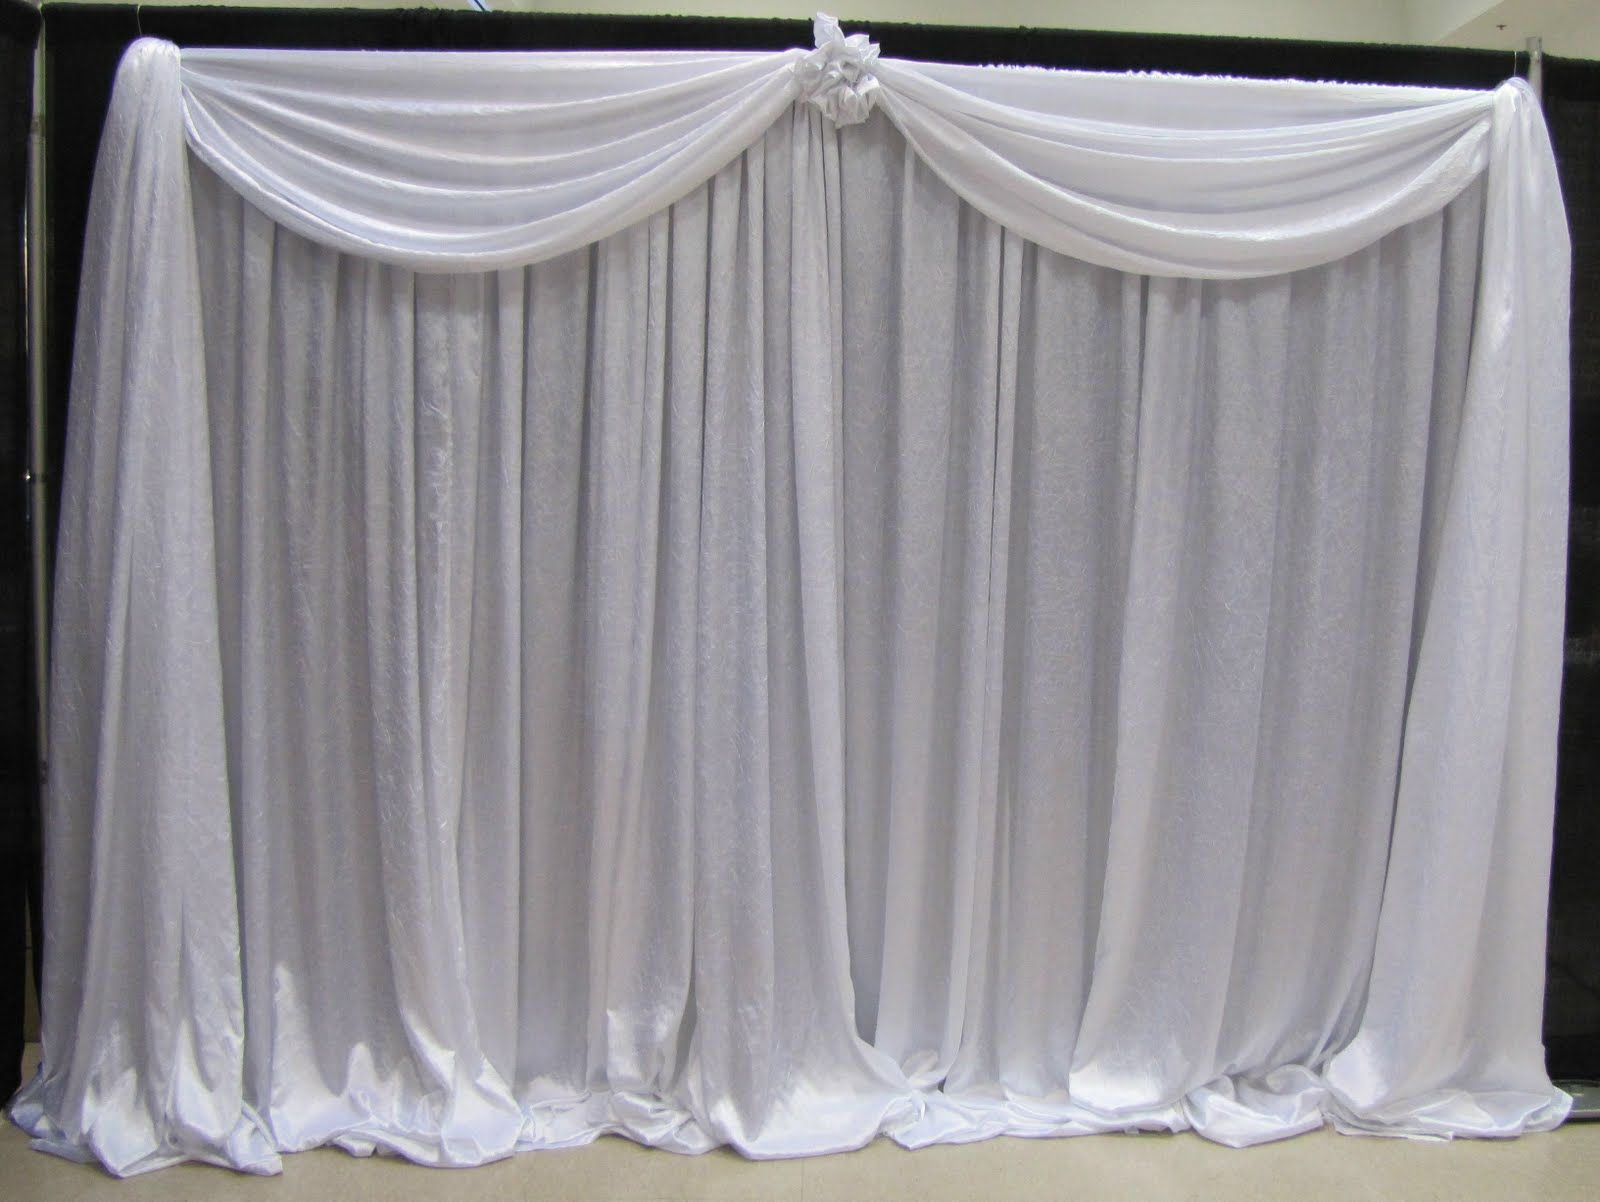 pipe backdrop show drapes chruch booths trade wholesale churches and drape cropped kits supplies for